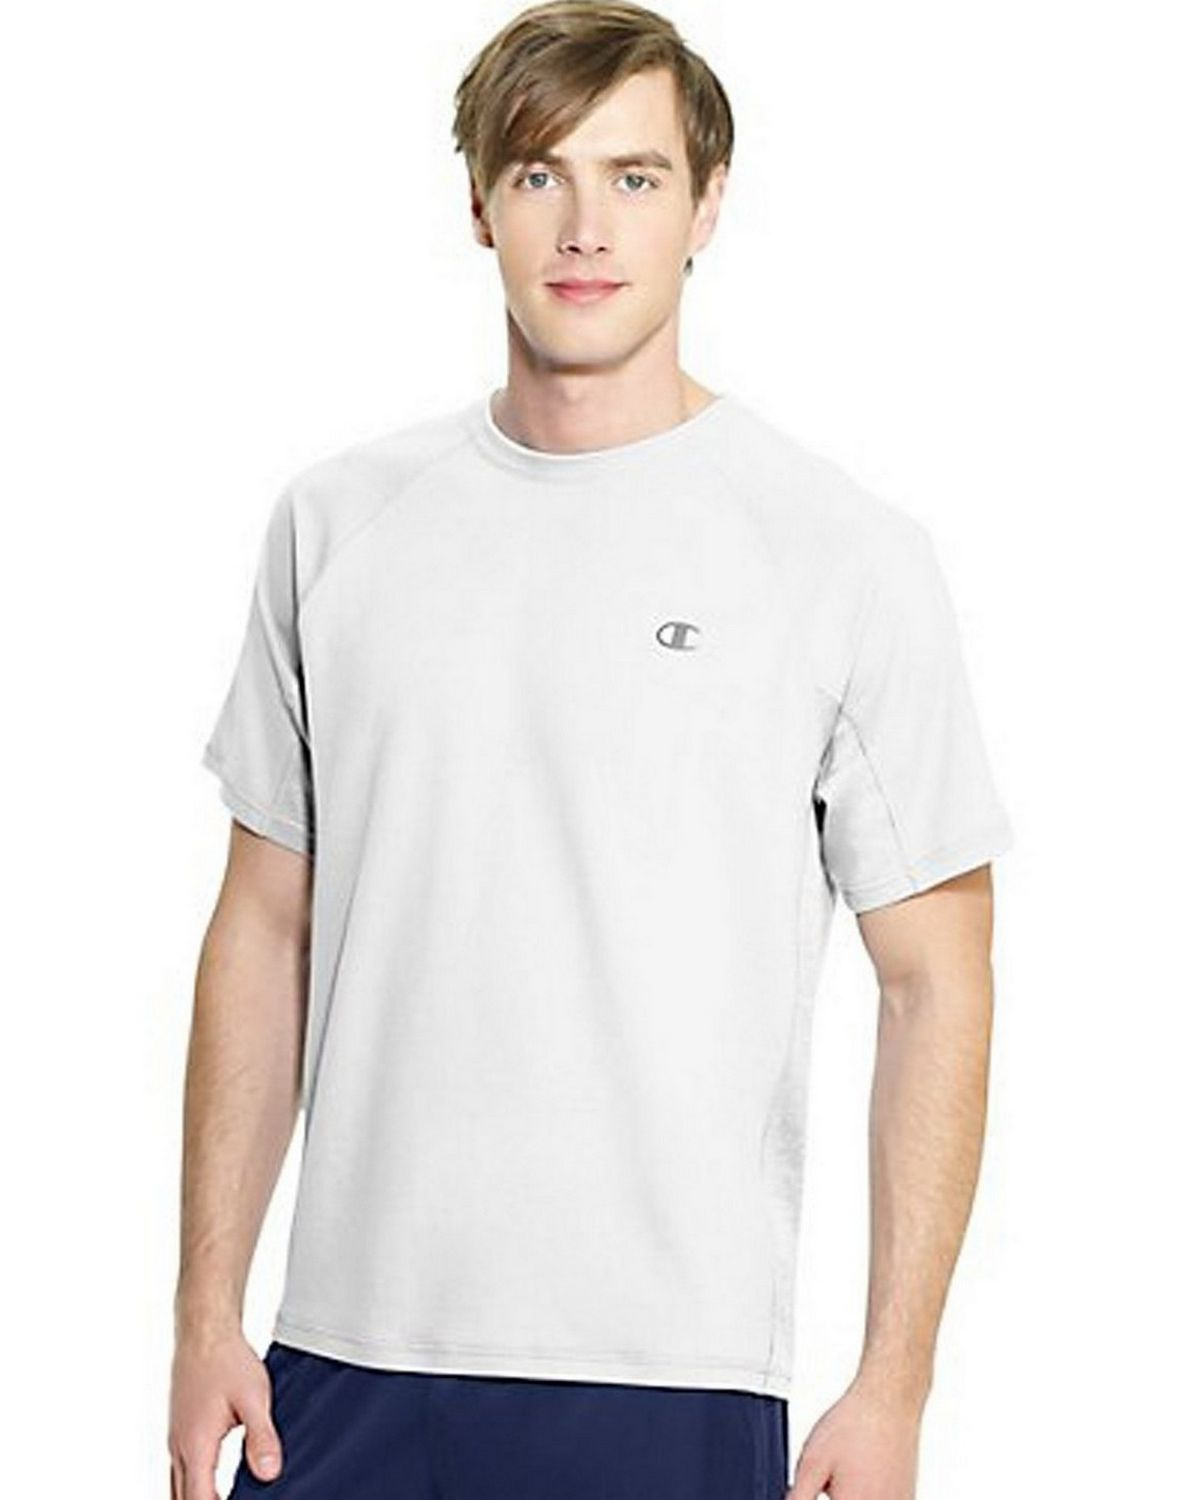 Champion T6608 Vapor PowerTrain Colorblock Tee - Black - L T6608